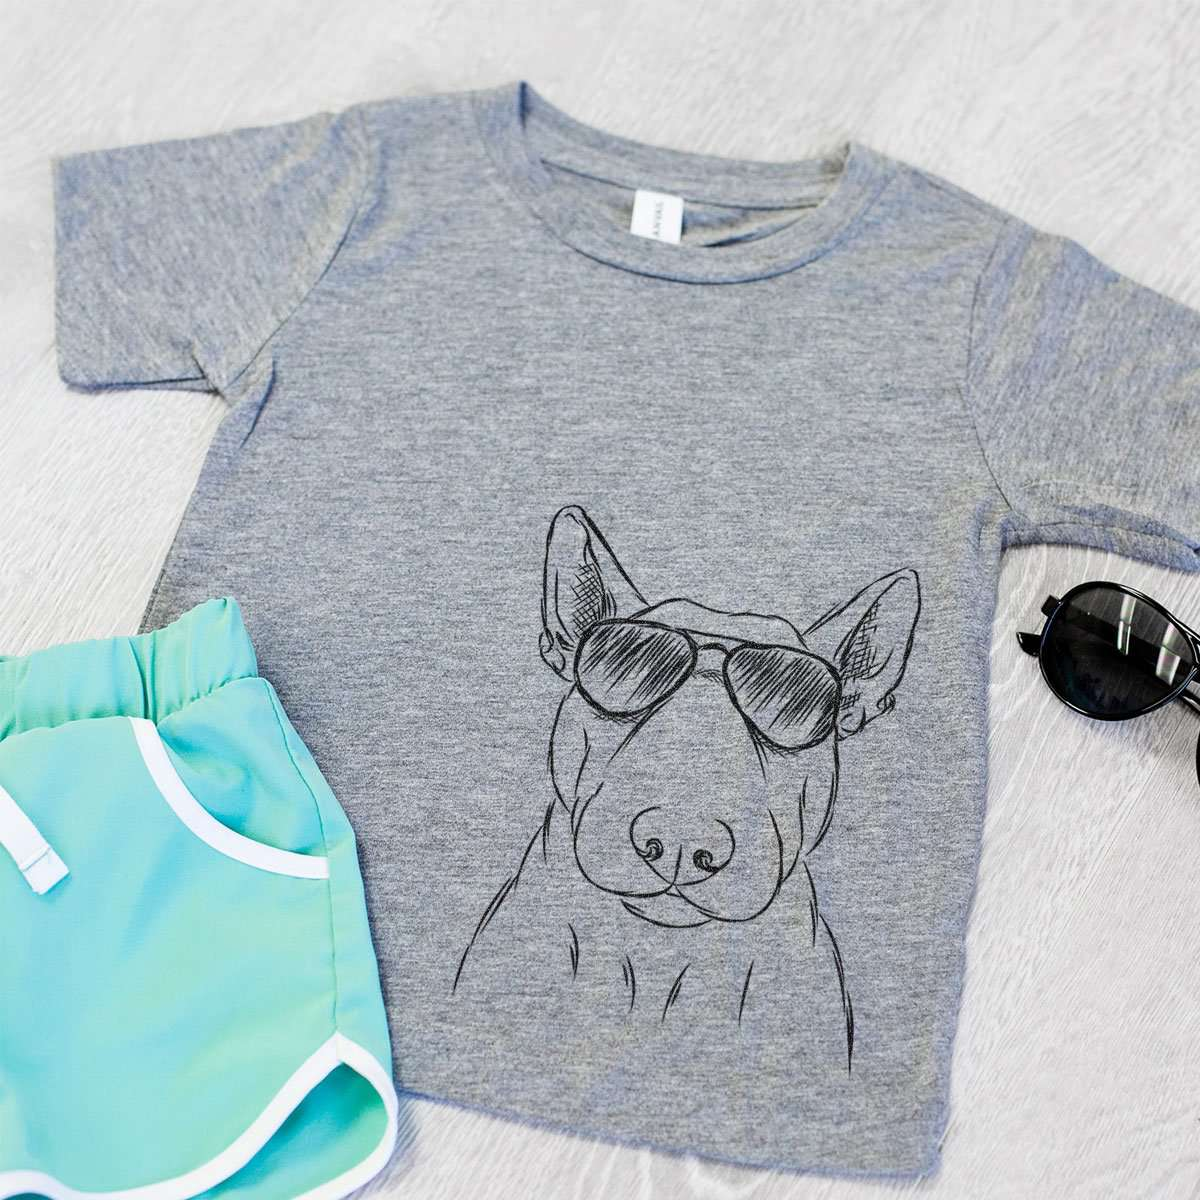 Jett the Bull Terrier - Kids/Youth/Toddler Shirt